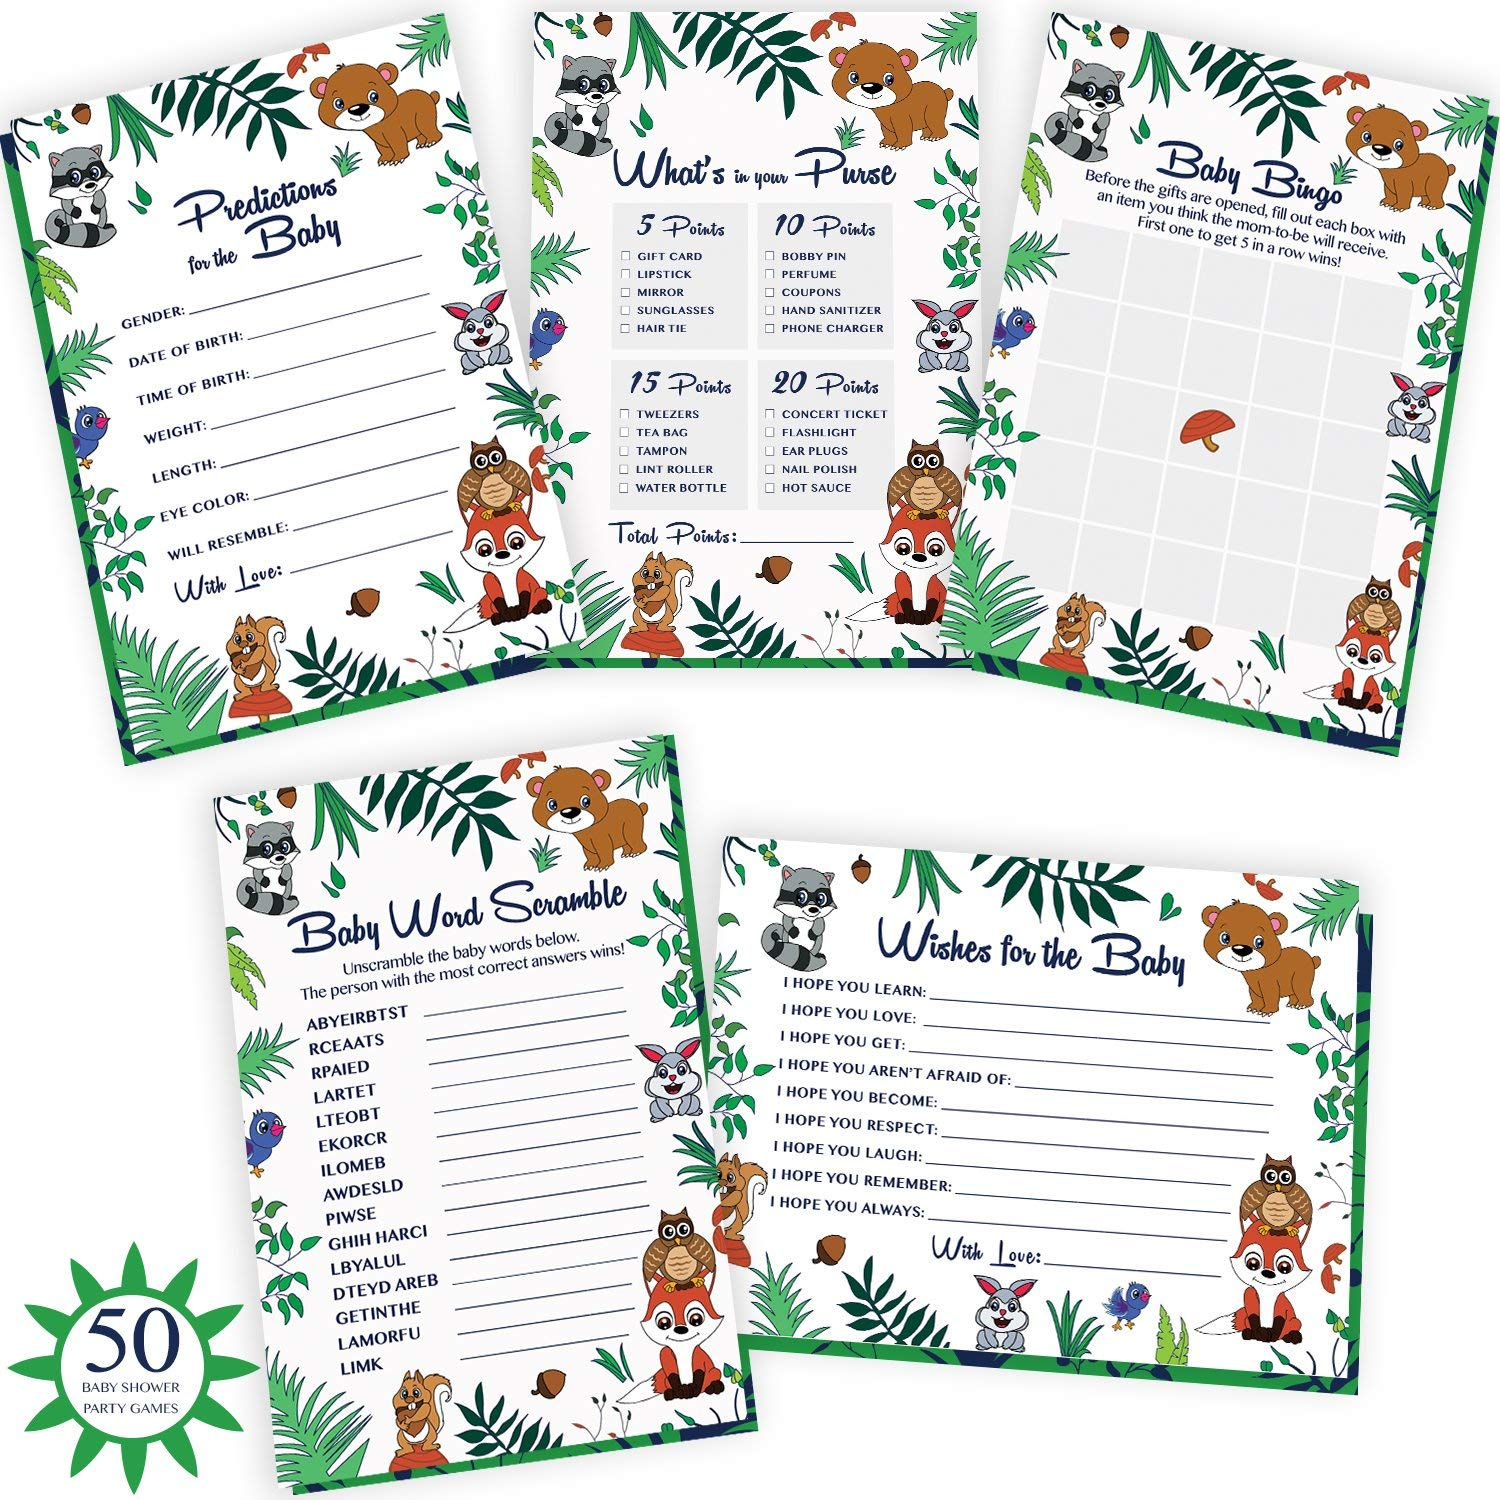 Alpine Celebrations Woodland Baby Shower Games. 5x50 Party Supply Cards Include Wishes & Advice, Bingo, Word Search, Predictions. Gender Neutral Cards for boy or Girl